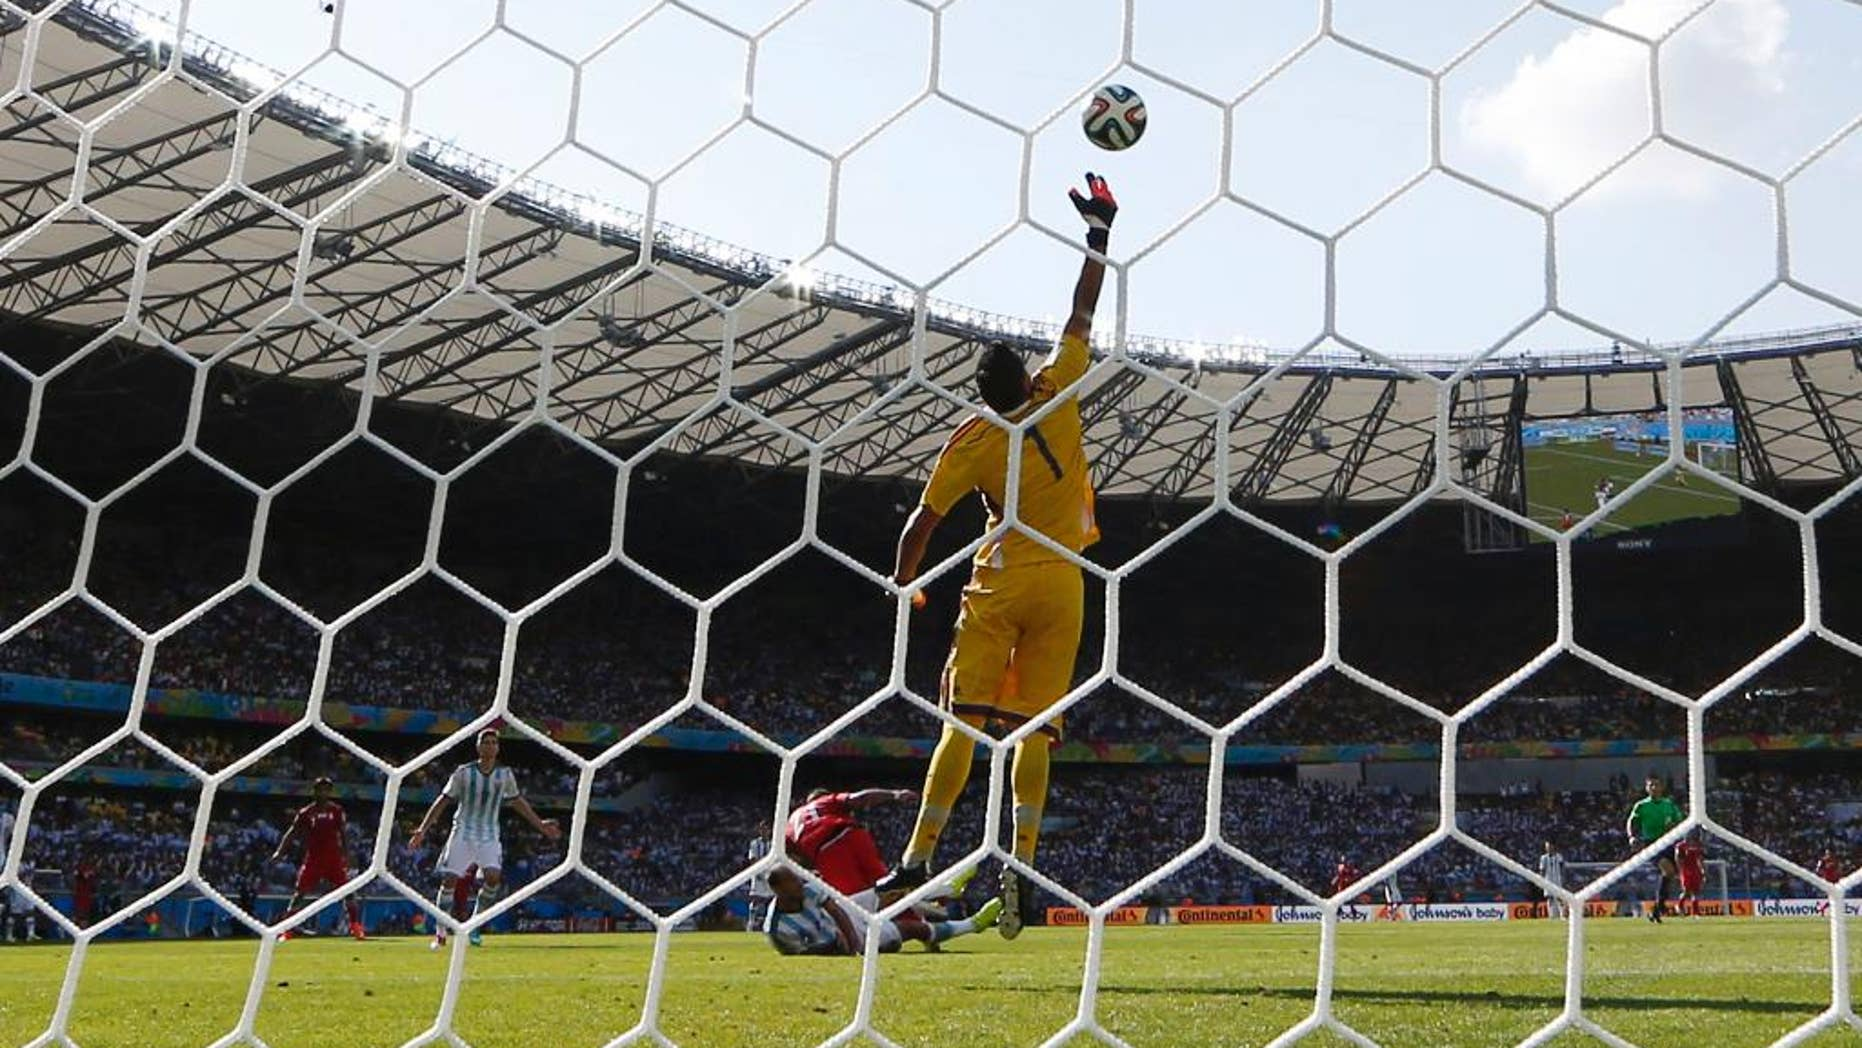 Argentina's goalkeeper Sergio Romero deflects a header by Iran's Ashkan Dejagah over the goal during the group F World Cup soccer match between Argentina and Iran at the Mineirao Stadium in Belo Horizonte, Brazil, Saturday, June 21, 2014. (AP Photo/Fernando Vergara)